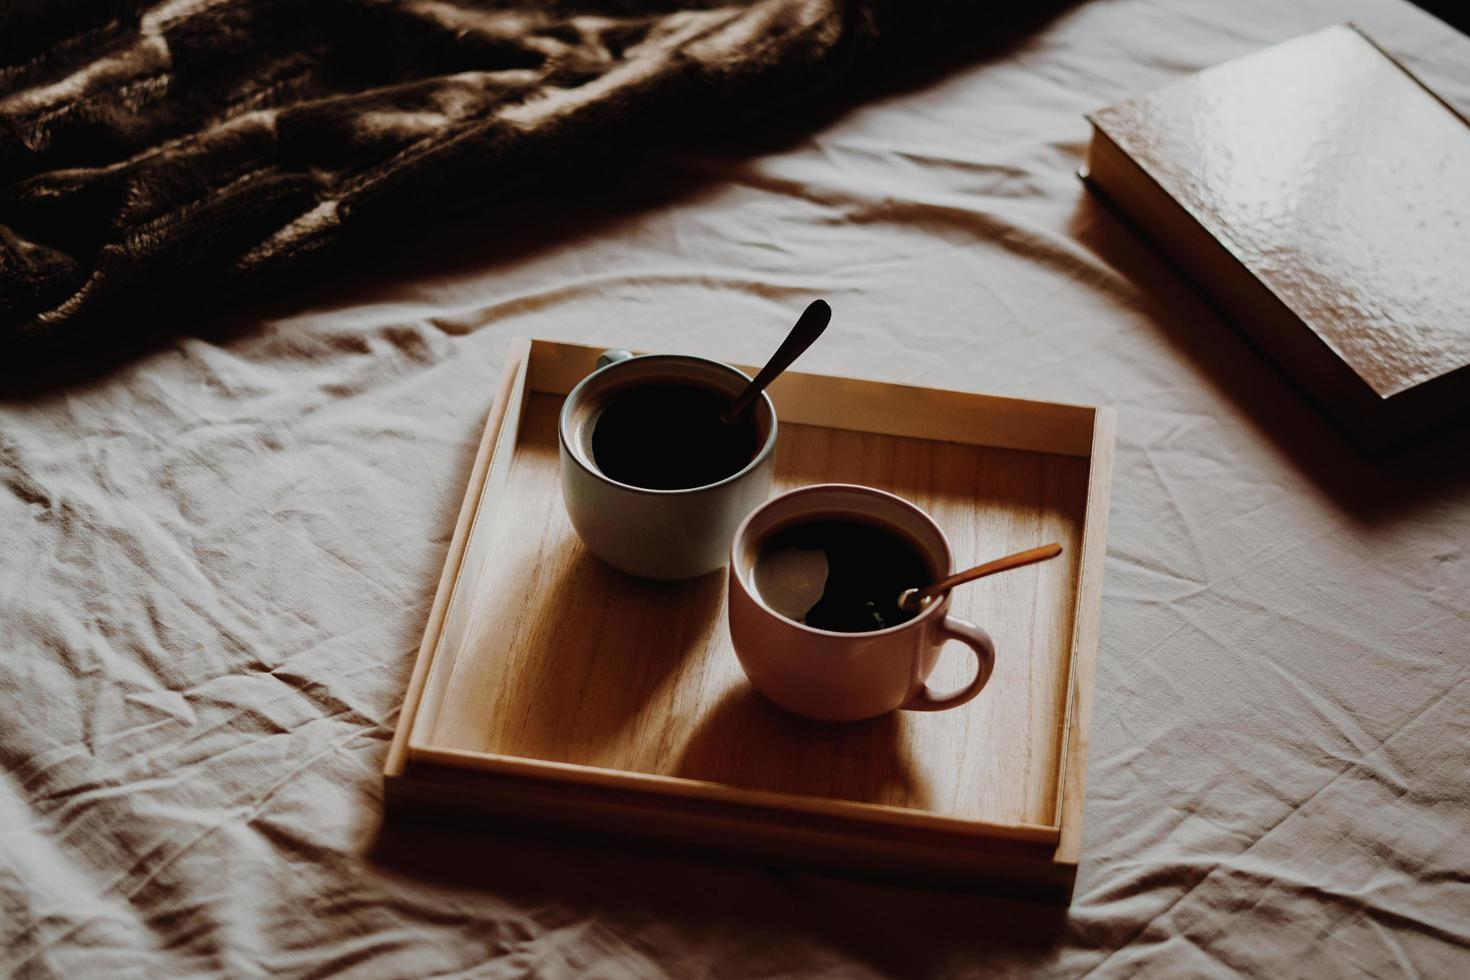 Cups of coffee on wooden tray on bed photo